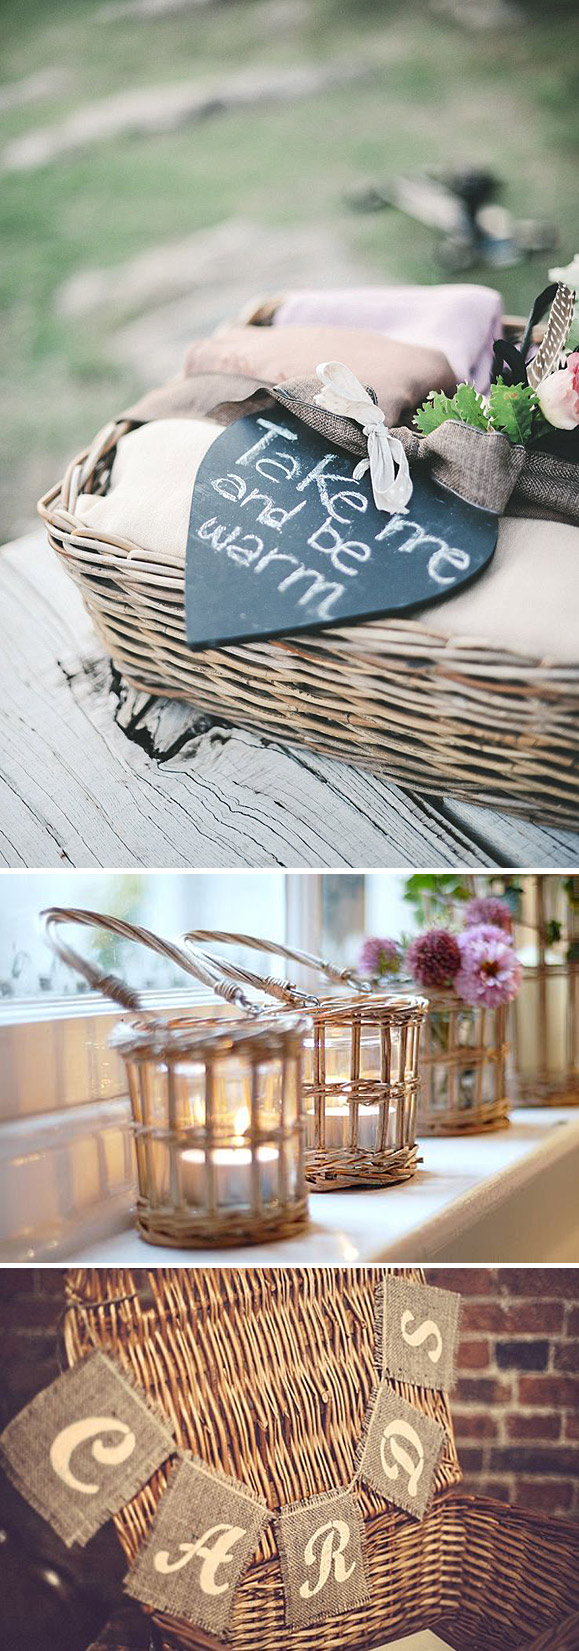 Canastas ideas para decorar tu boda foro organizar - Ideas para decorar fiestas ...